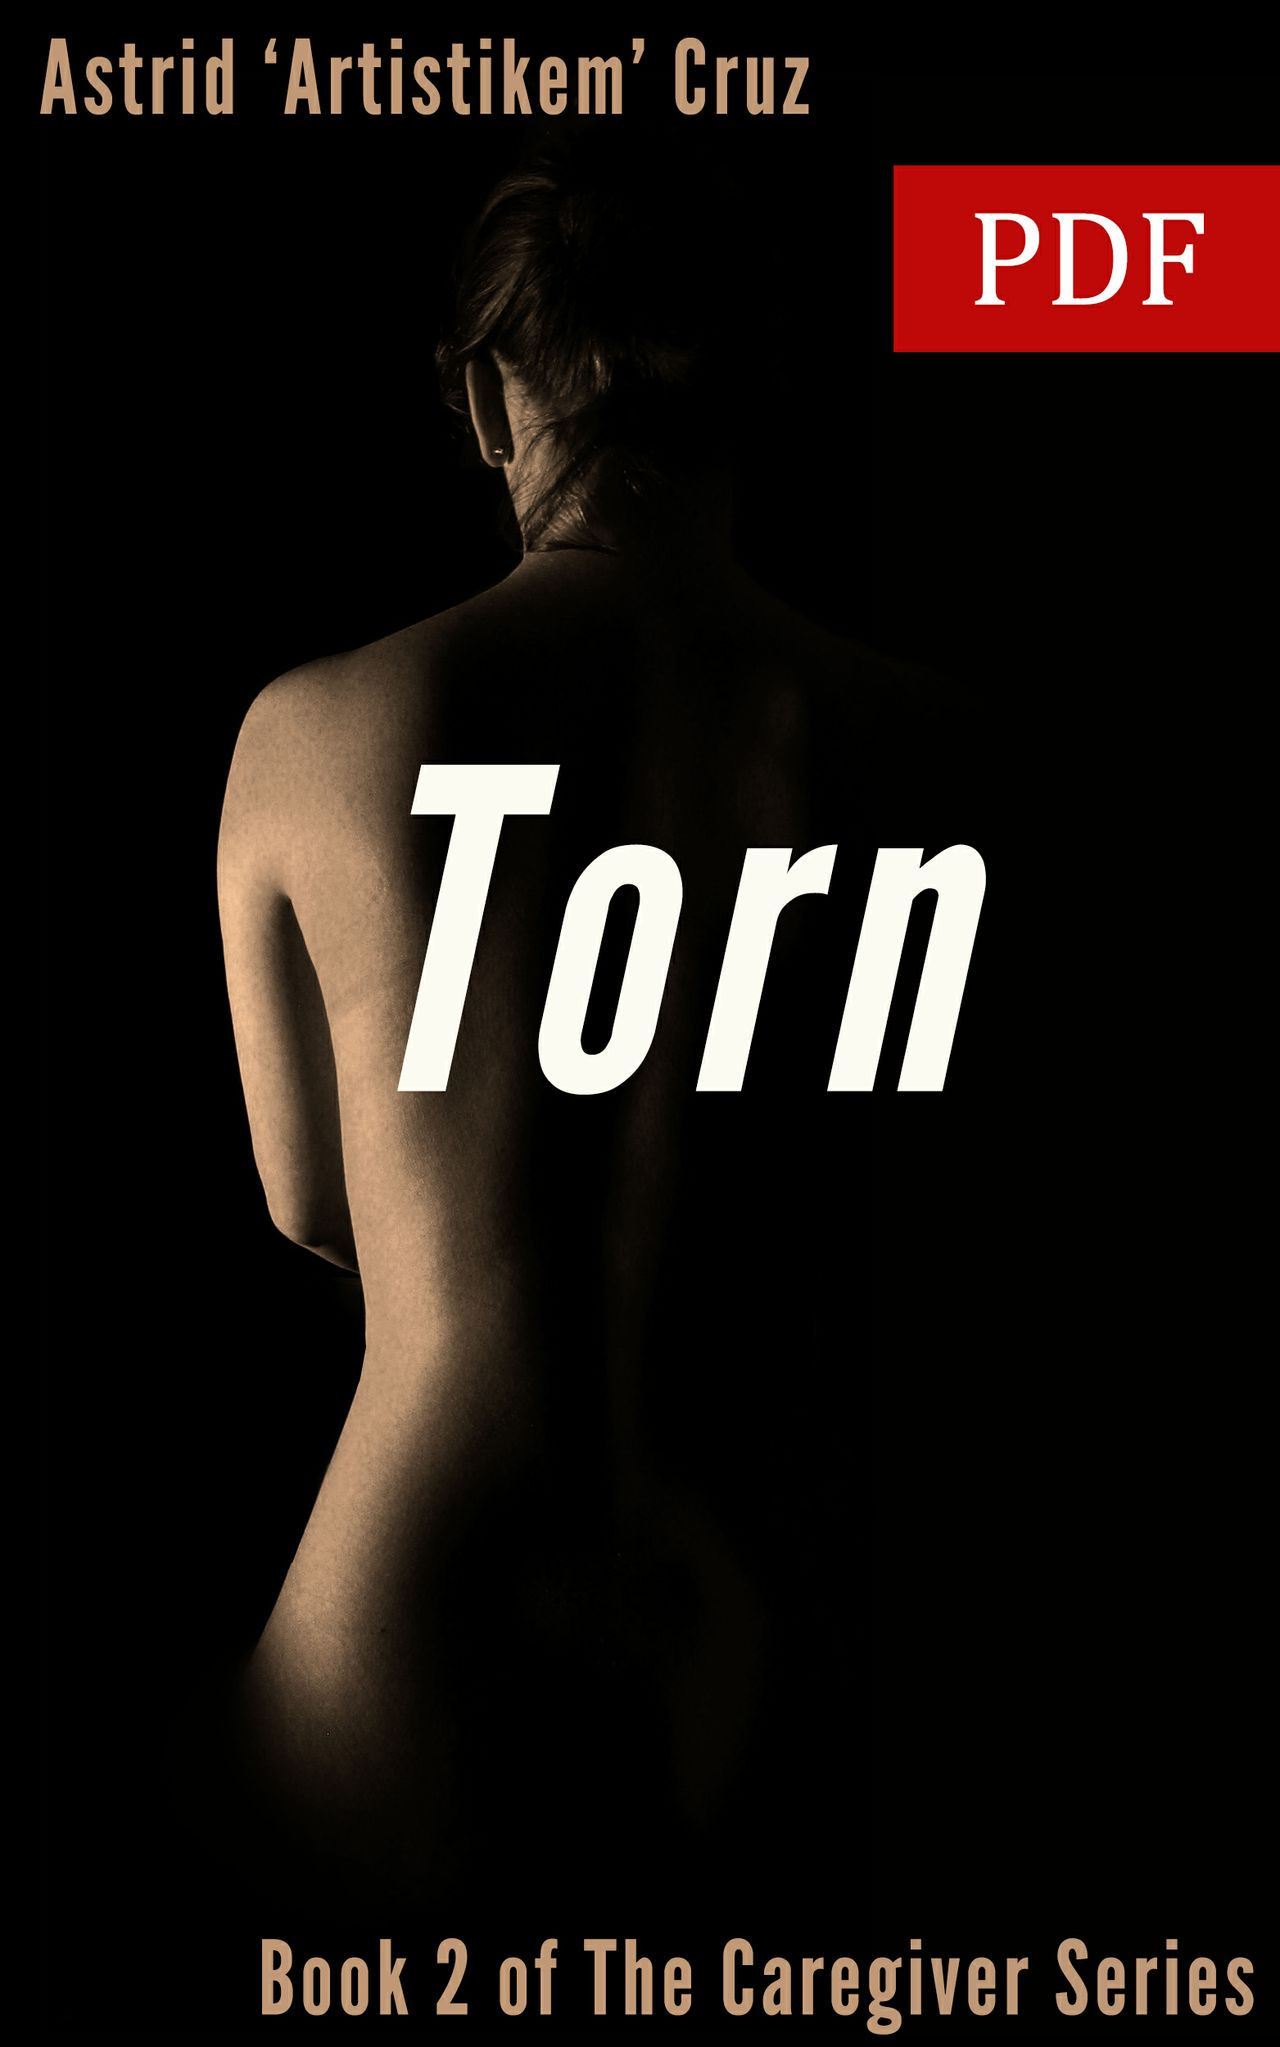 Torn (Book 2 of The Caregiver Series) - PDF